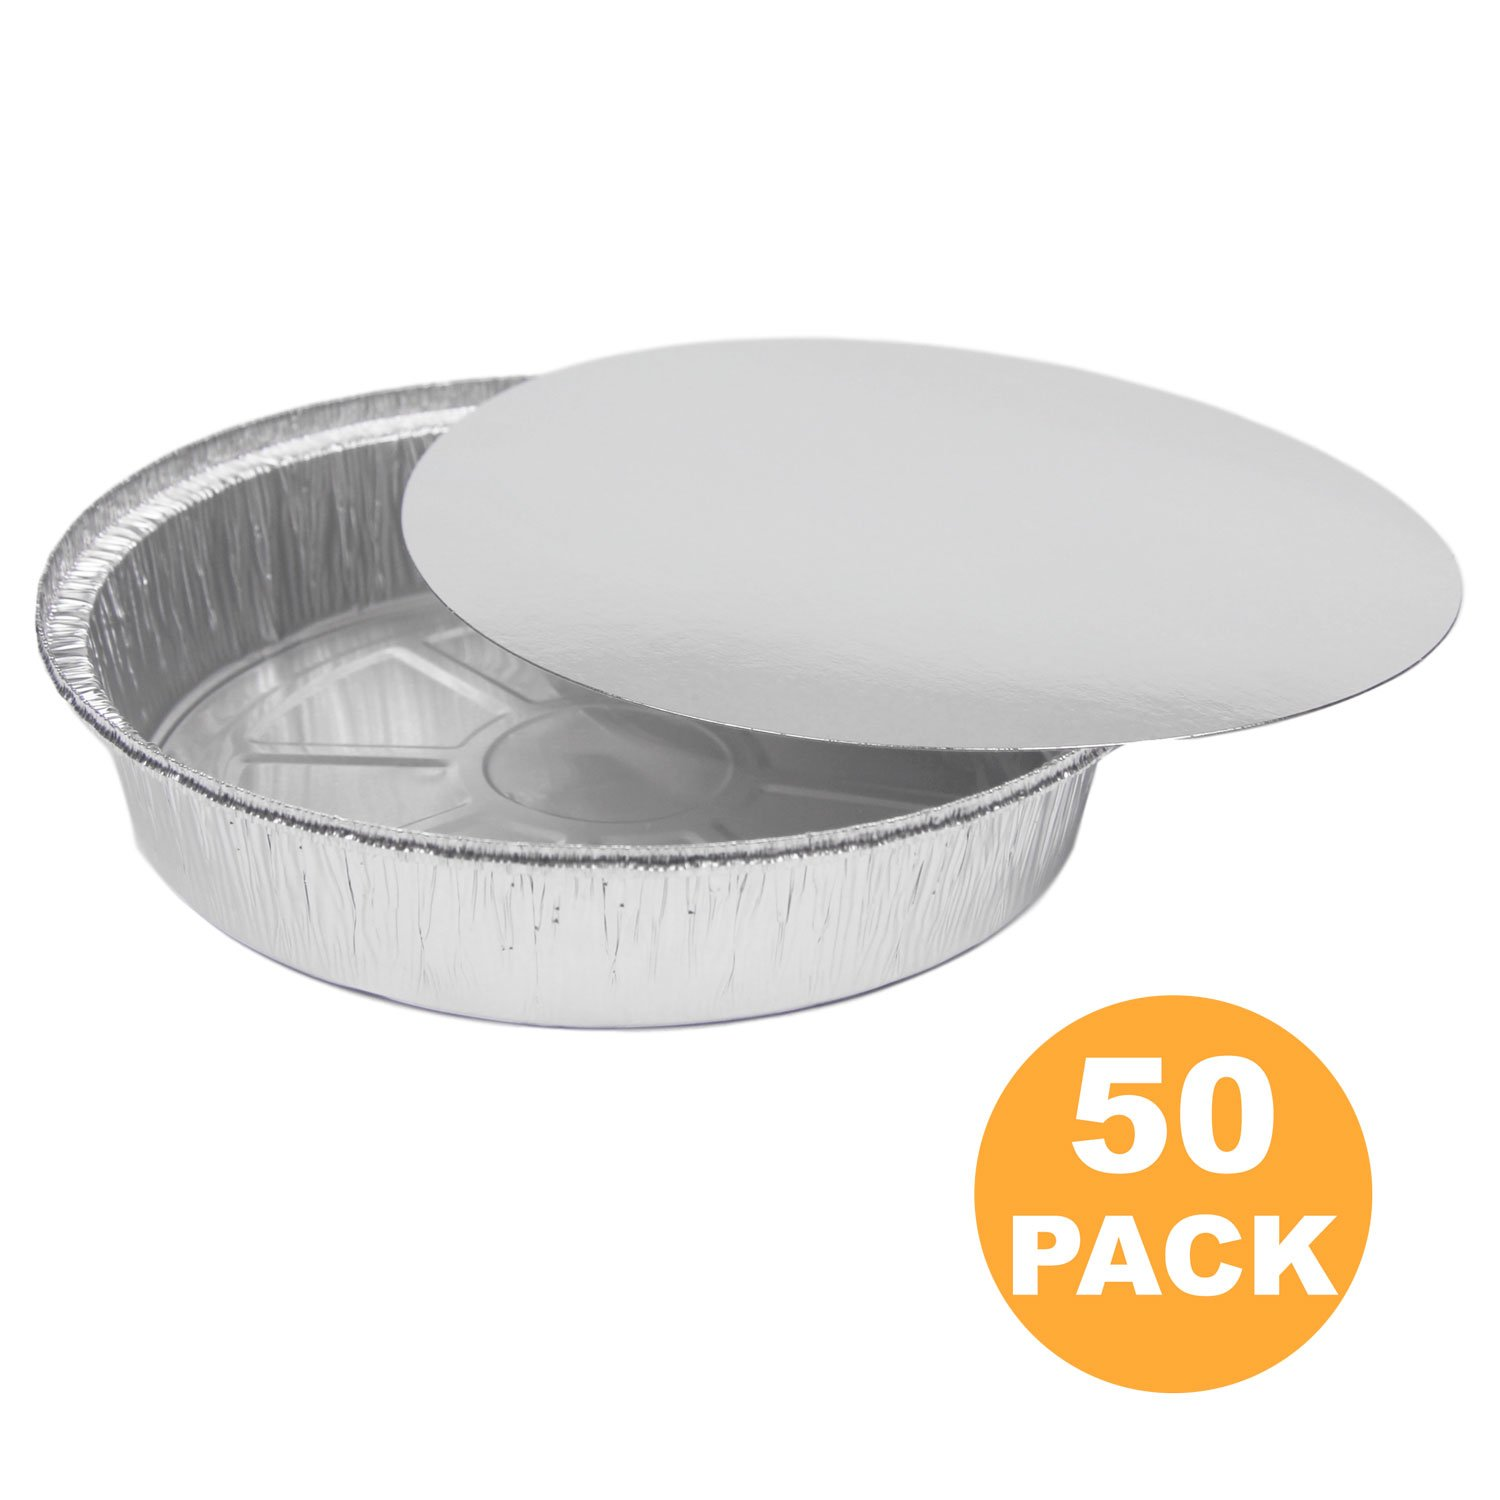 Round 9 Inch Disposable Aluminum Foil Pan Take Out Food Containers with Flat Board Lids, Steam Table Baking Pans, 46 oz, 2.9 lb, 1.5 Quart [100 Pack]